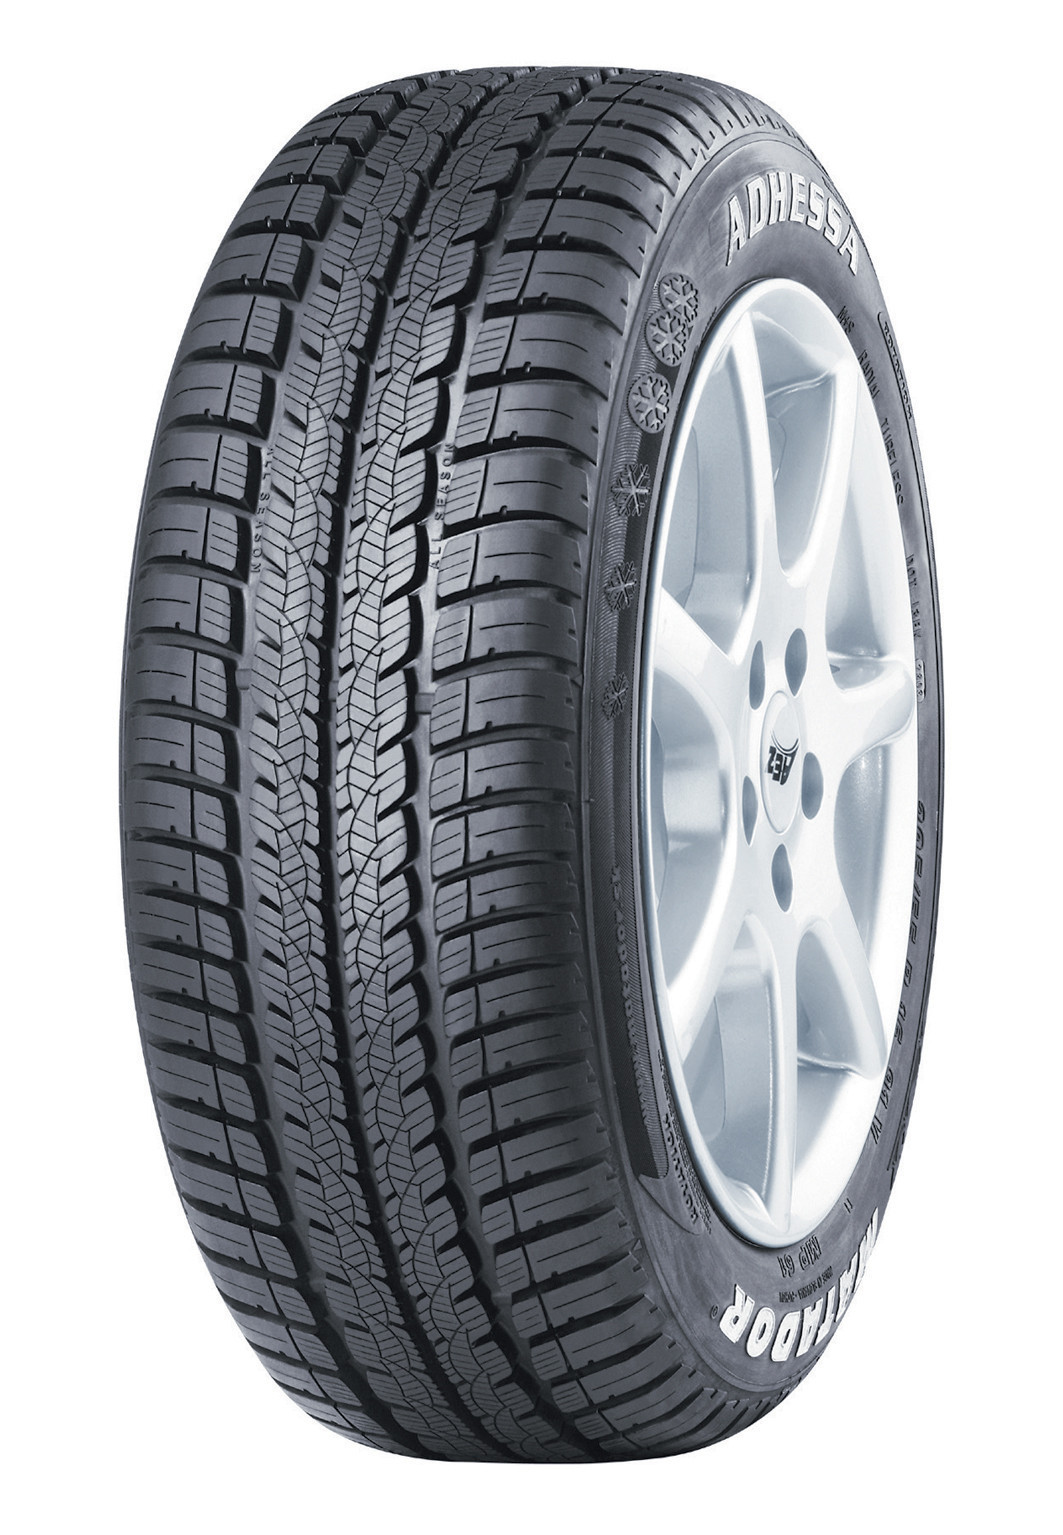 Anvelopa All Season 185/65R15 88H Matador Adhessa Evo Mp61